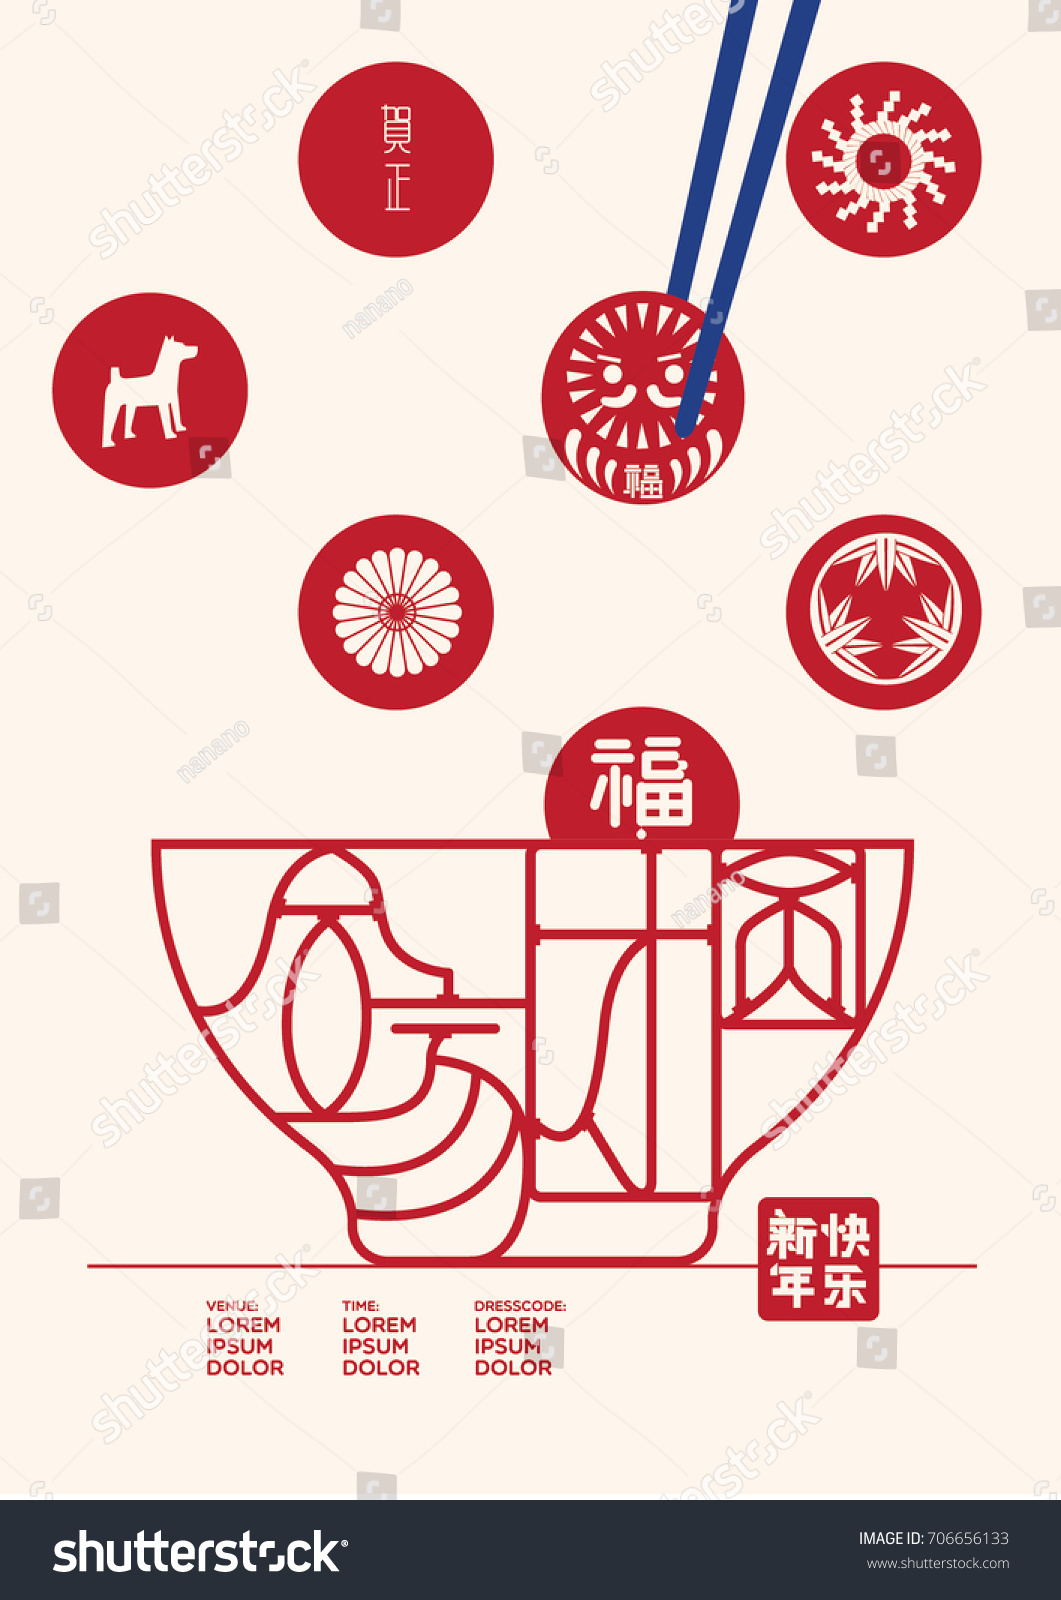 similar images to year of dog 2018 invitation card chinese new year 2018 paper art translation happy new year bless family reunion bowl of fortune